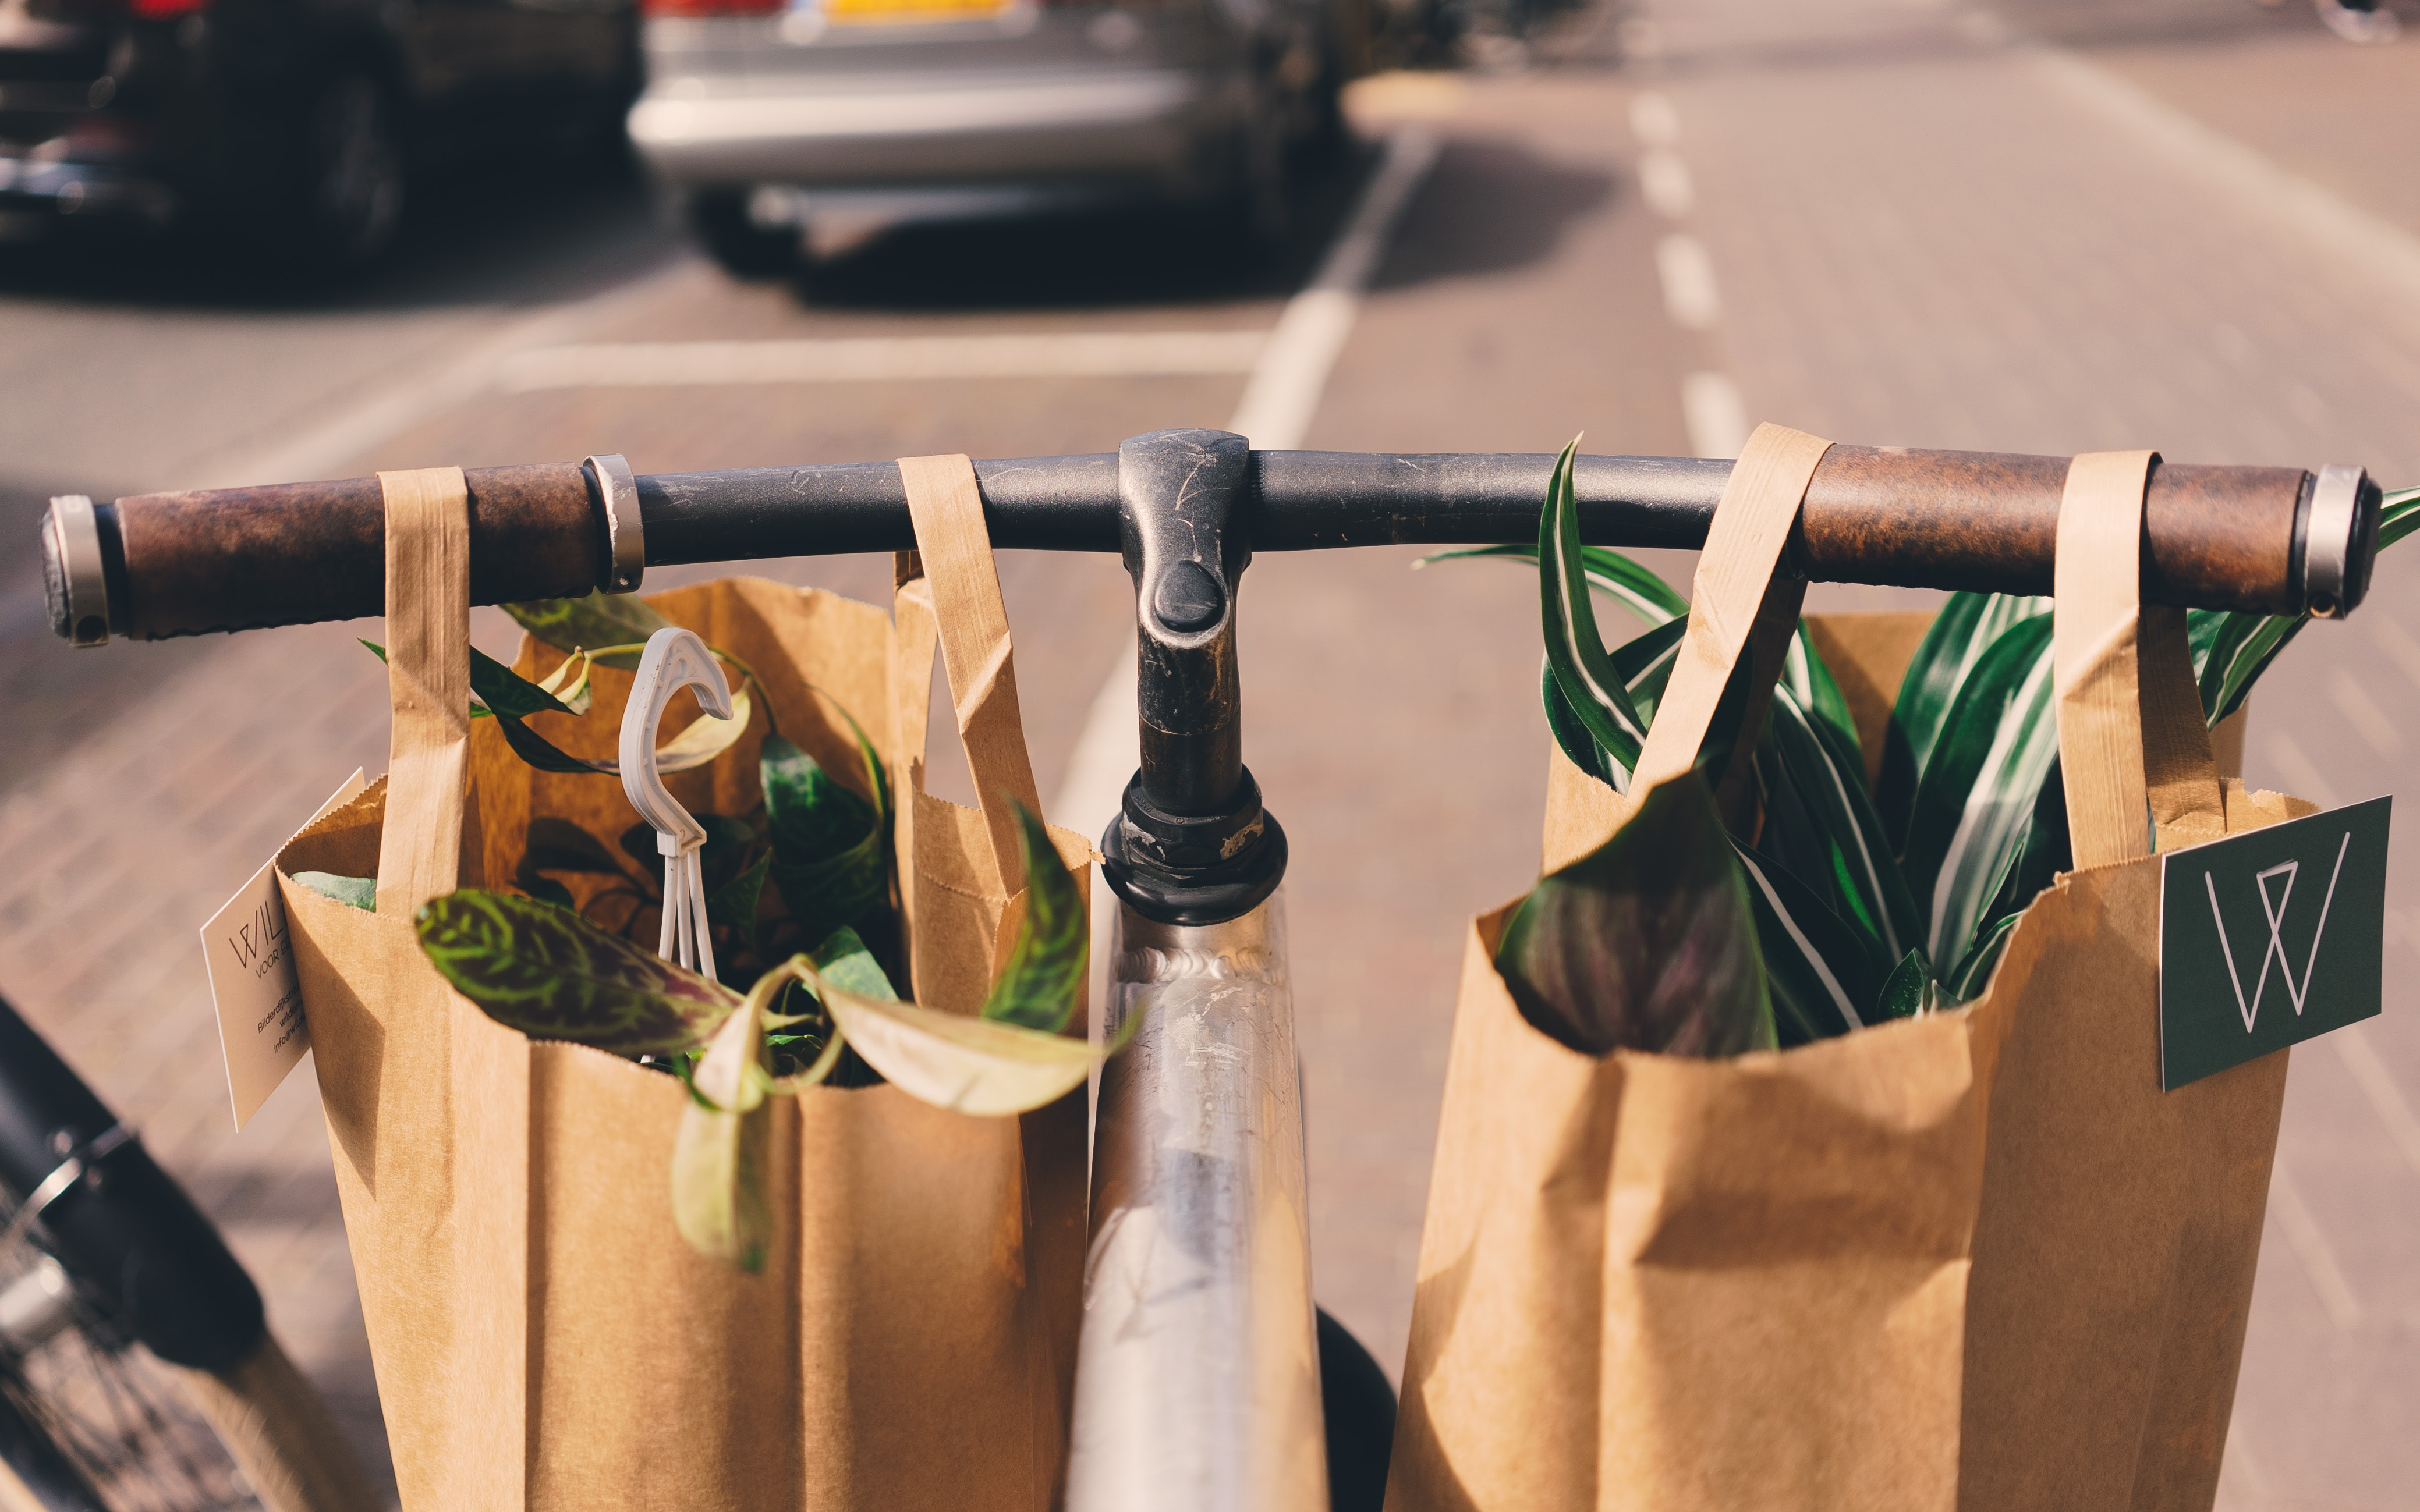 Paper bags of houseplants hang on the handlebars of a bicycle